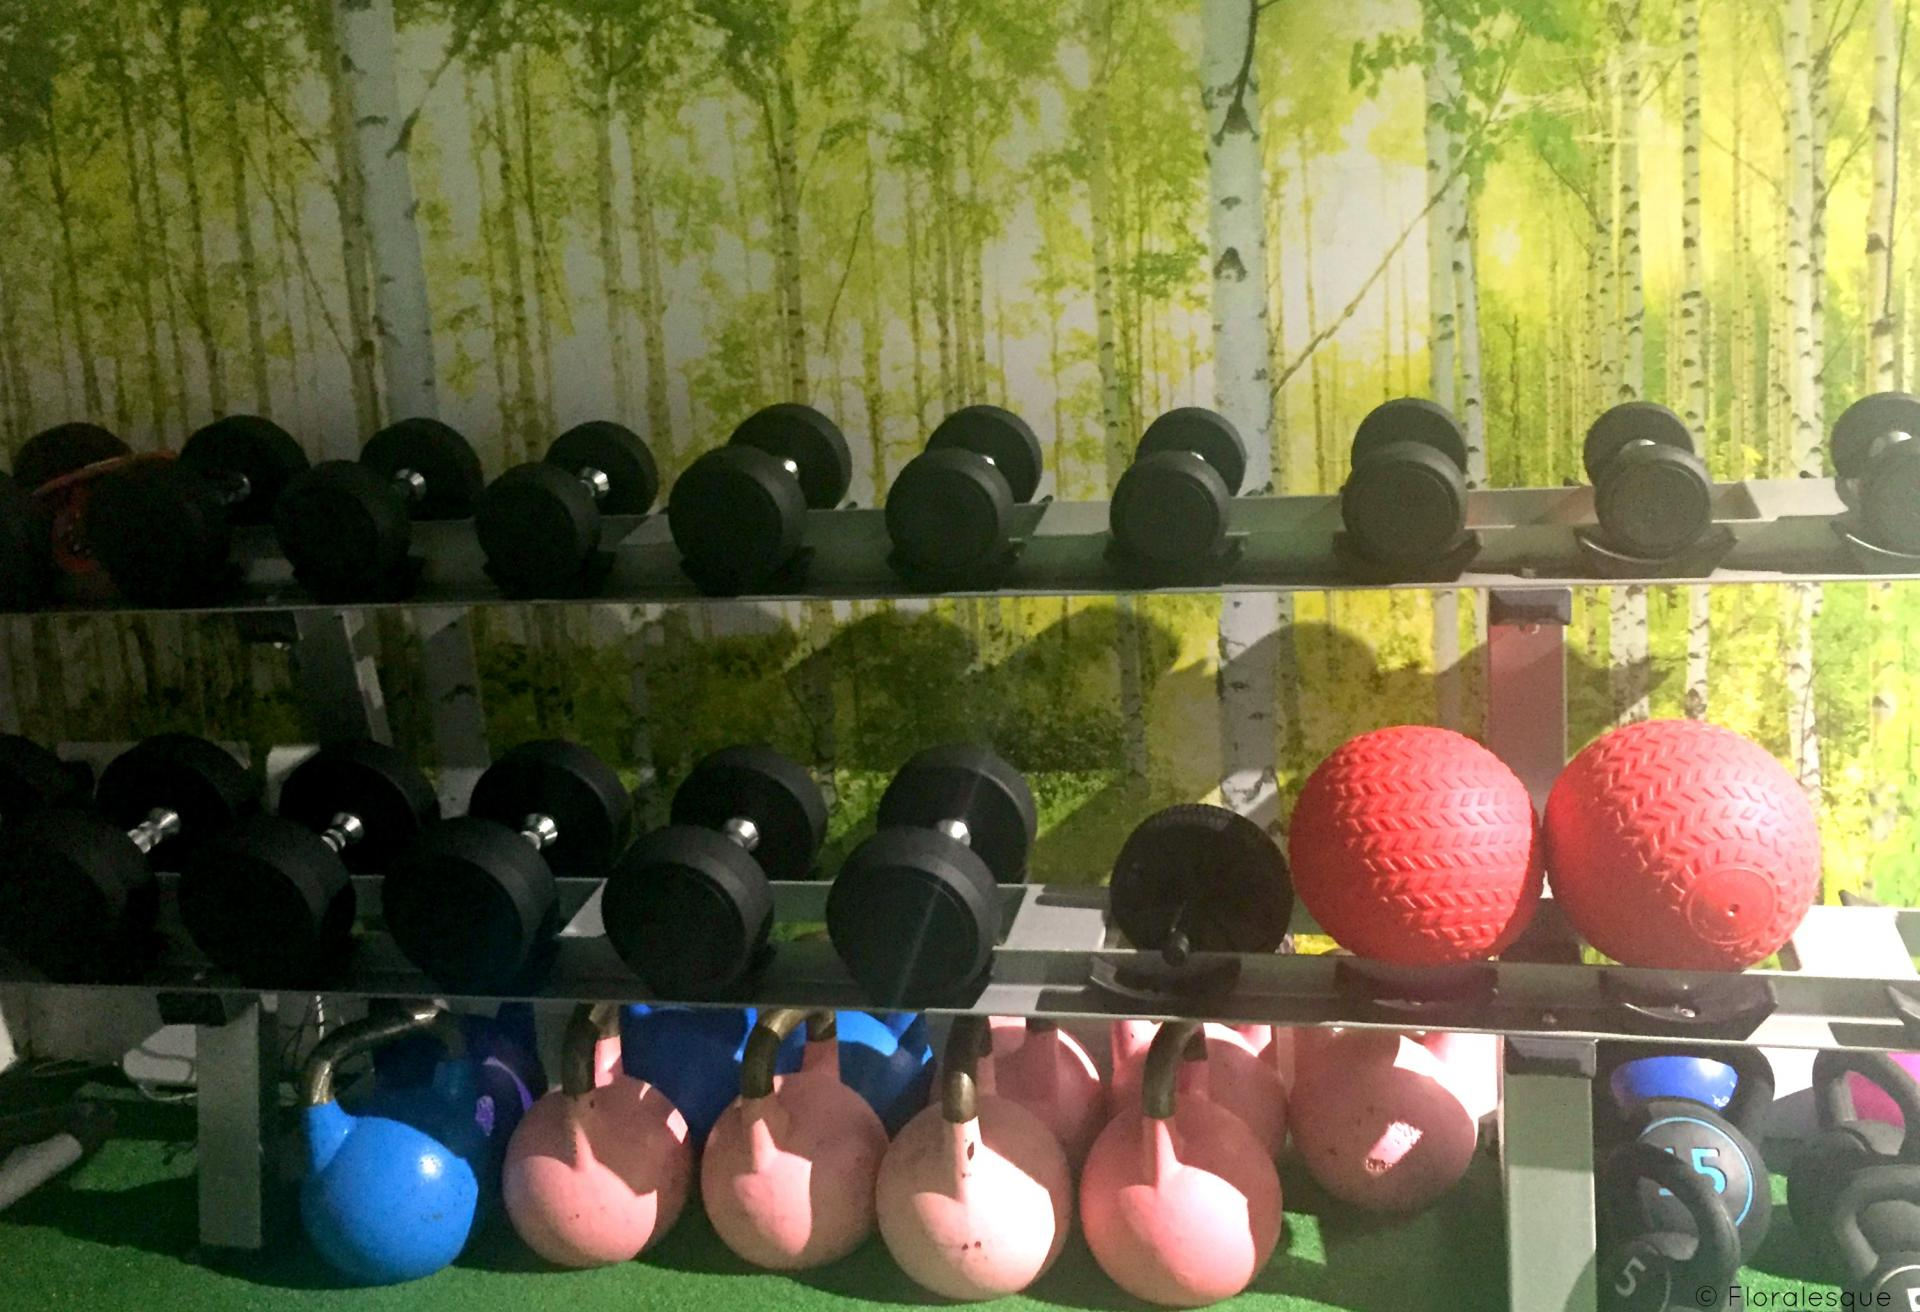 Kettlebells – not just swinging a ball around